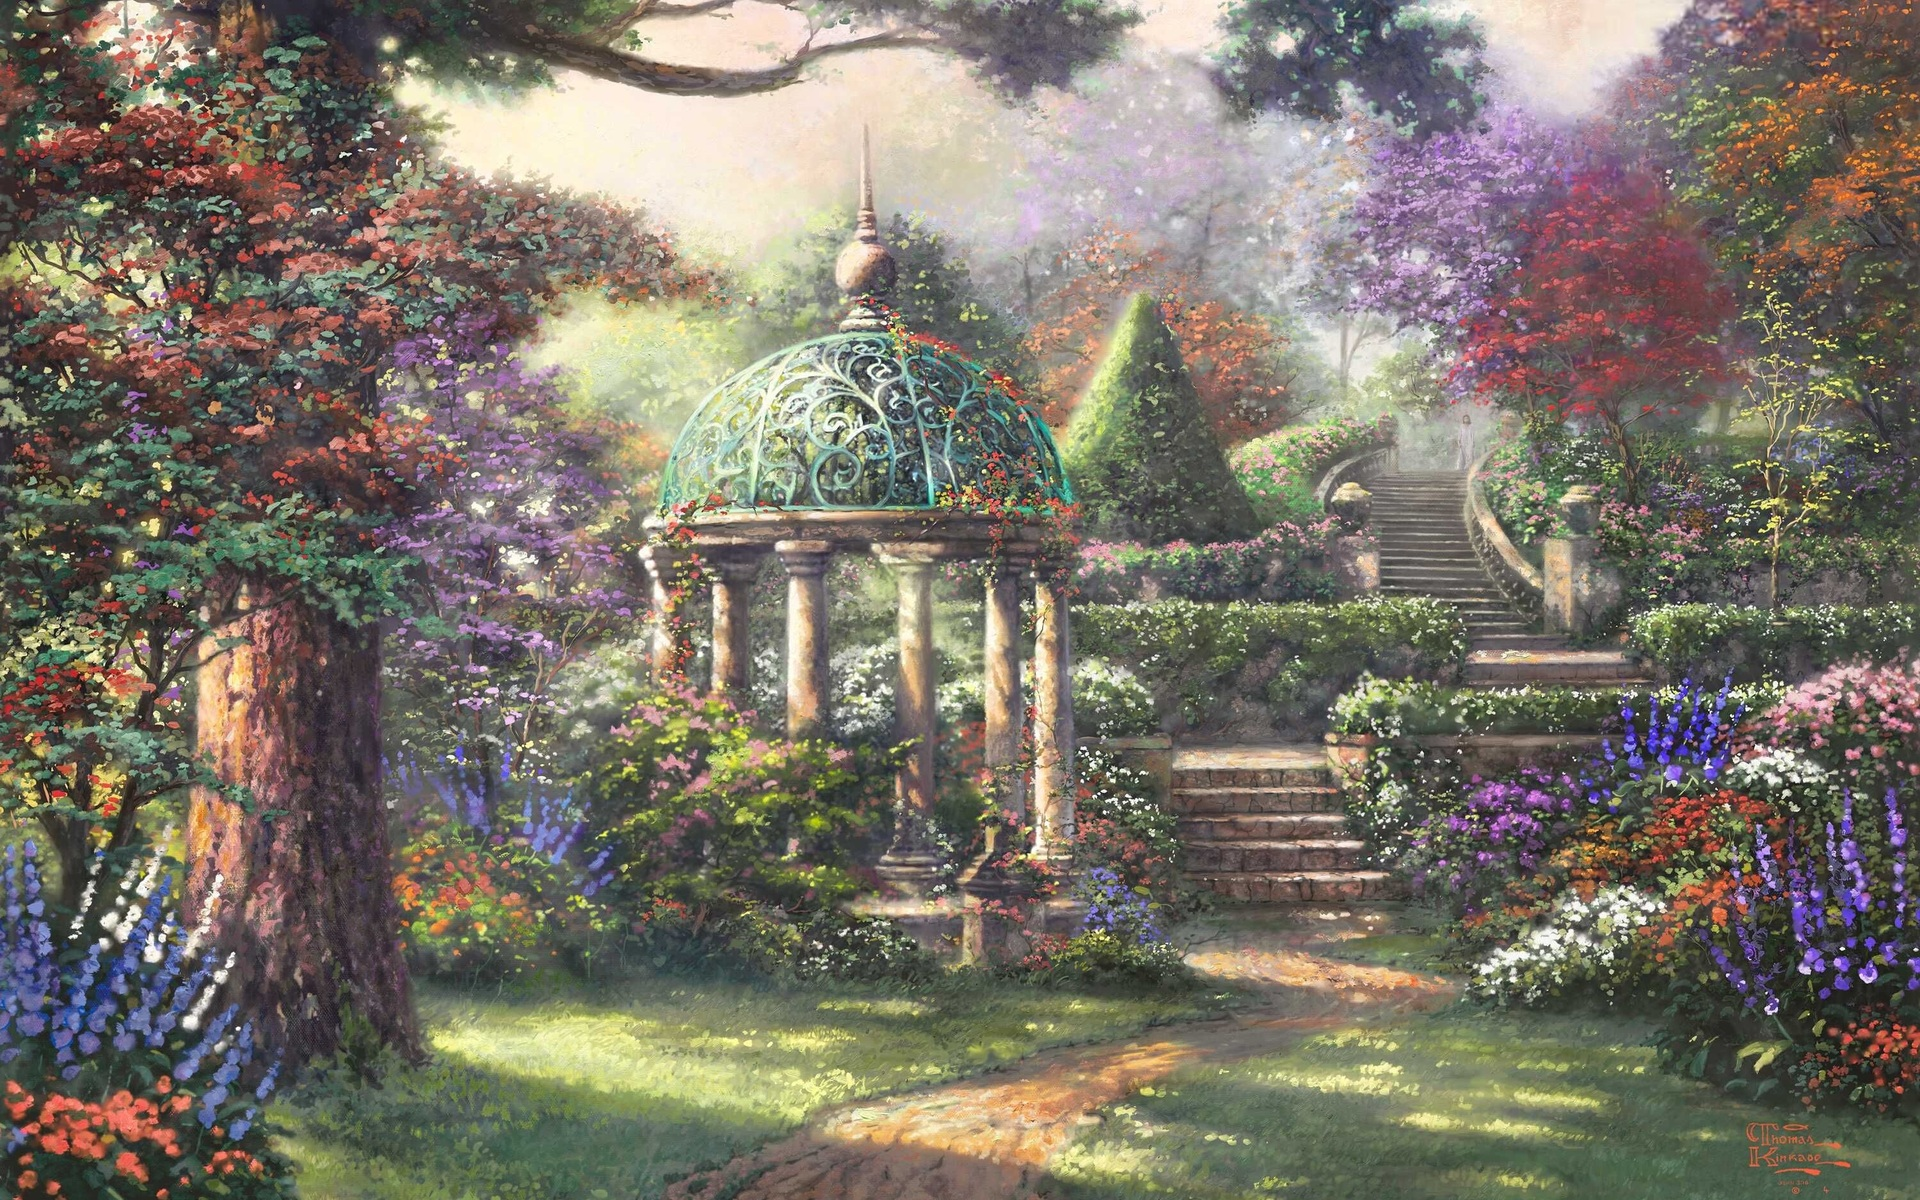 Thomas kinkade wallpapers hd awesome wallpapers - Art village wallpaper ...